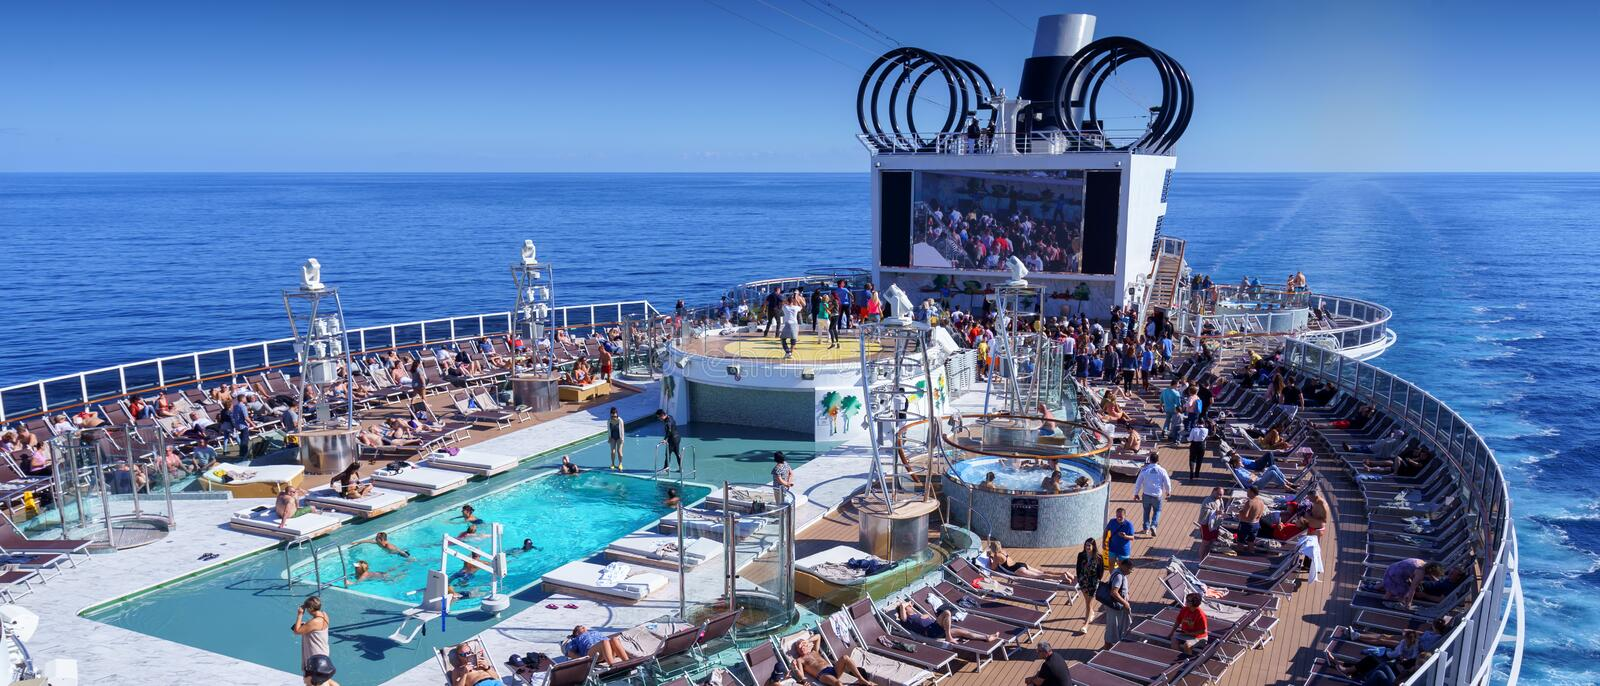 BARCELONA, SPAIN- 06 NOVEMBER, 2018: An aerial view of a cruise ship pool area with people in the open sea royalty free stock photo